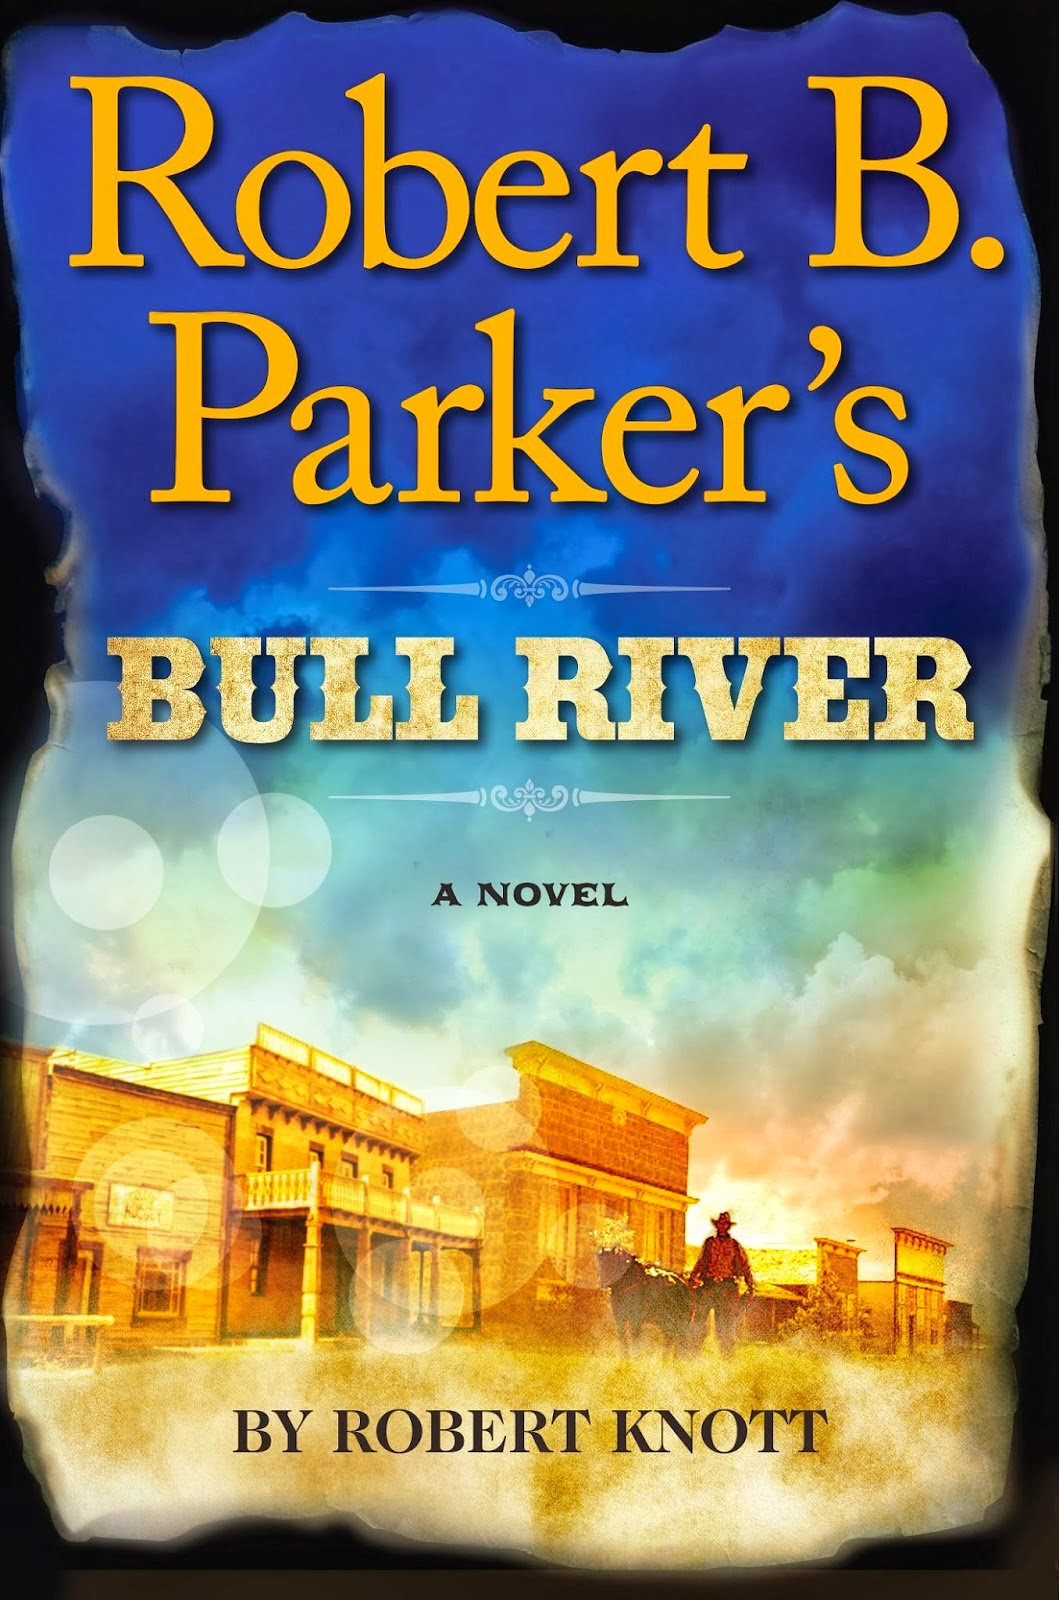 http://discover.halifaxpubliclibraries.ca/?q=title:%22robert%20b.%20parker%27s%20bull%20river%22